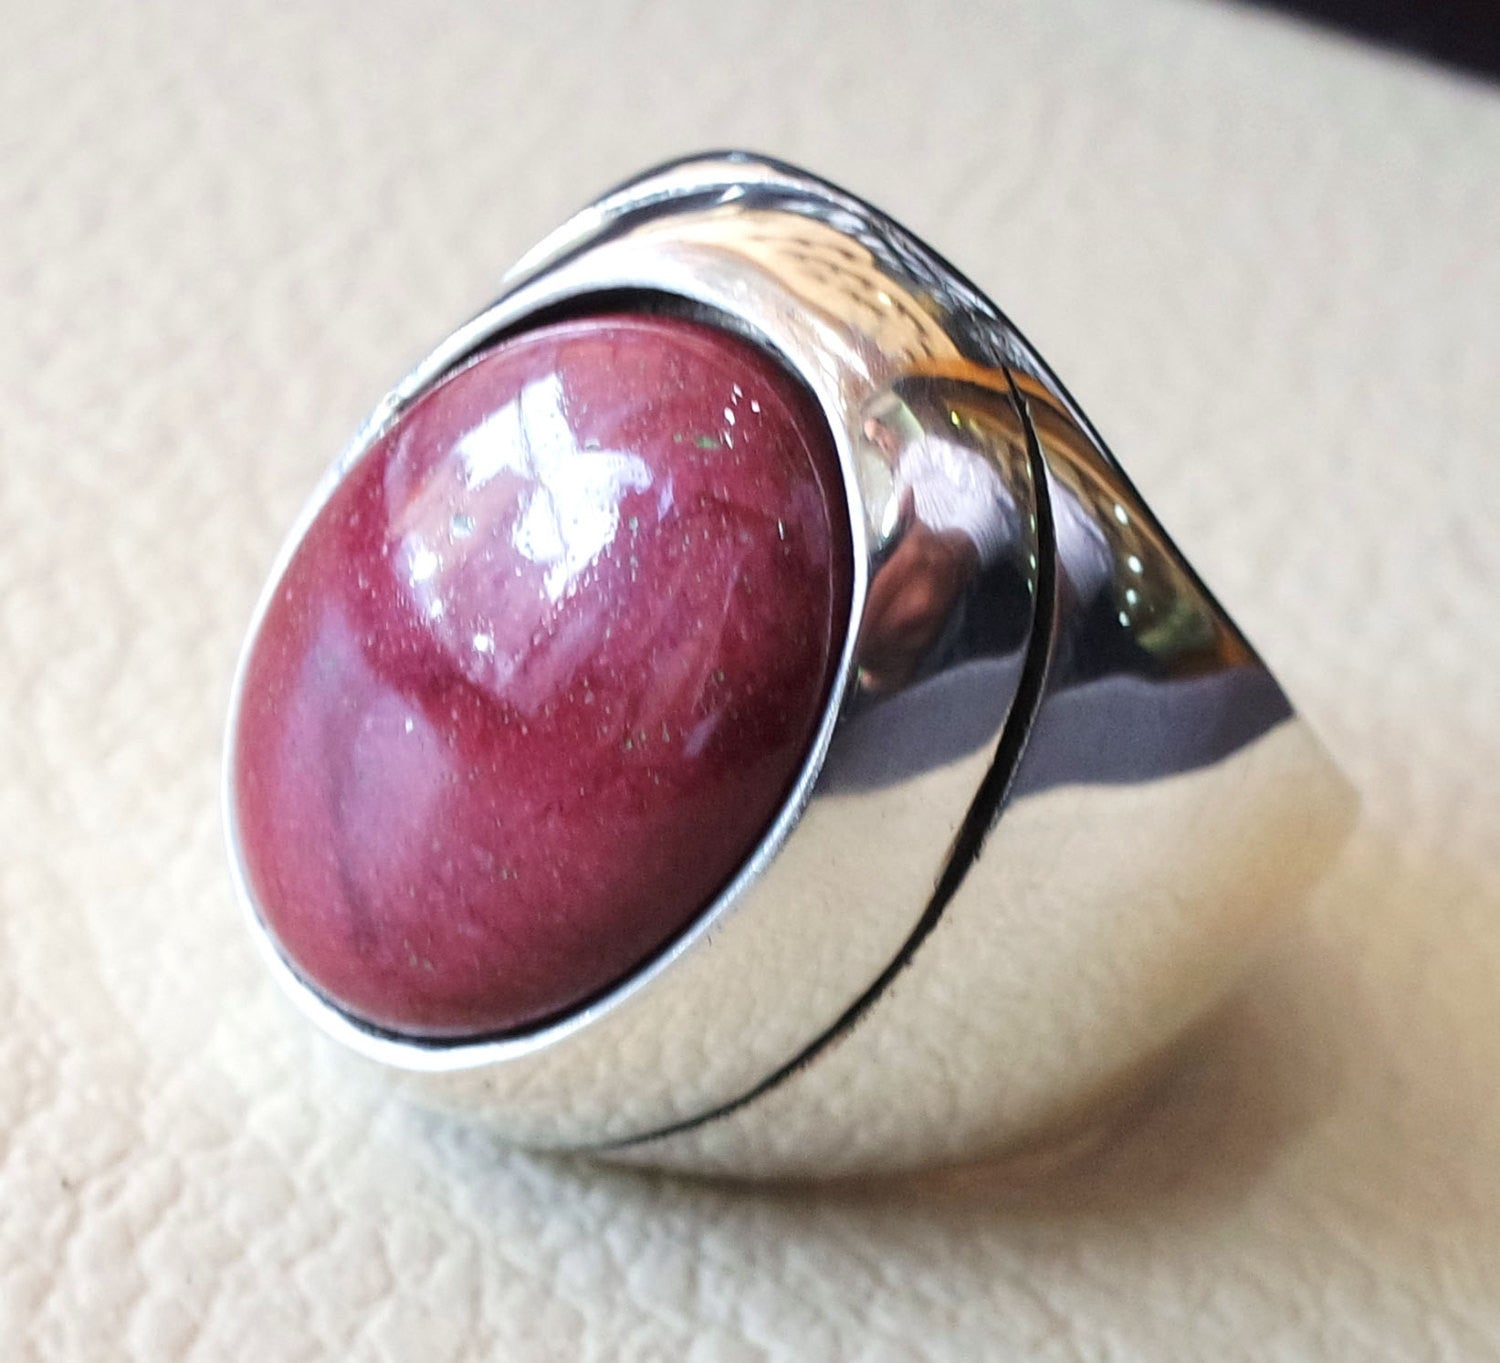 red rose mookaite jasper aqeeq natural stone sterling silver 925 heavy men ring vintage arabic turkish style all sizes fast shipping